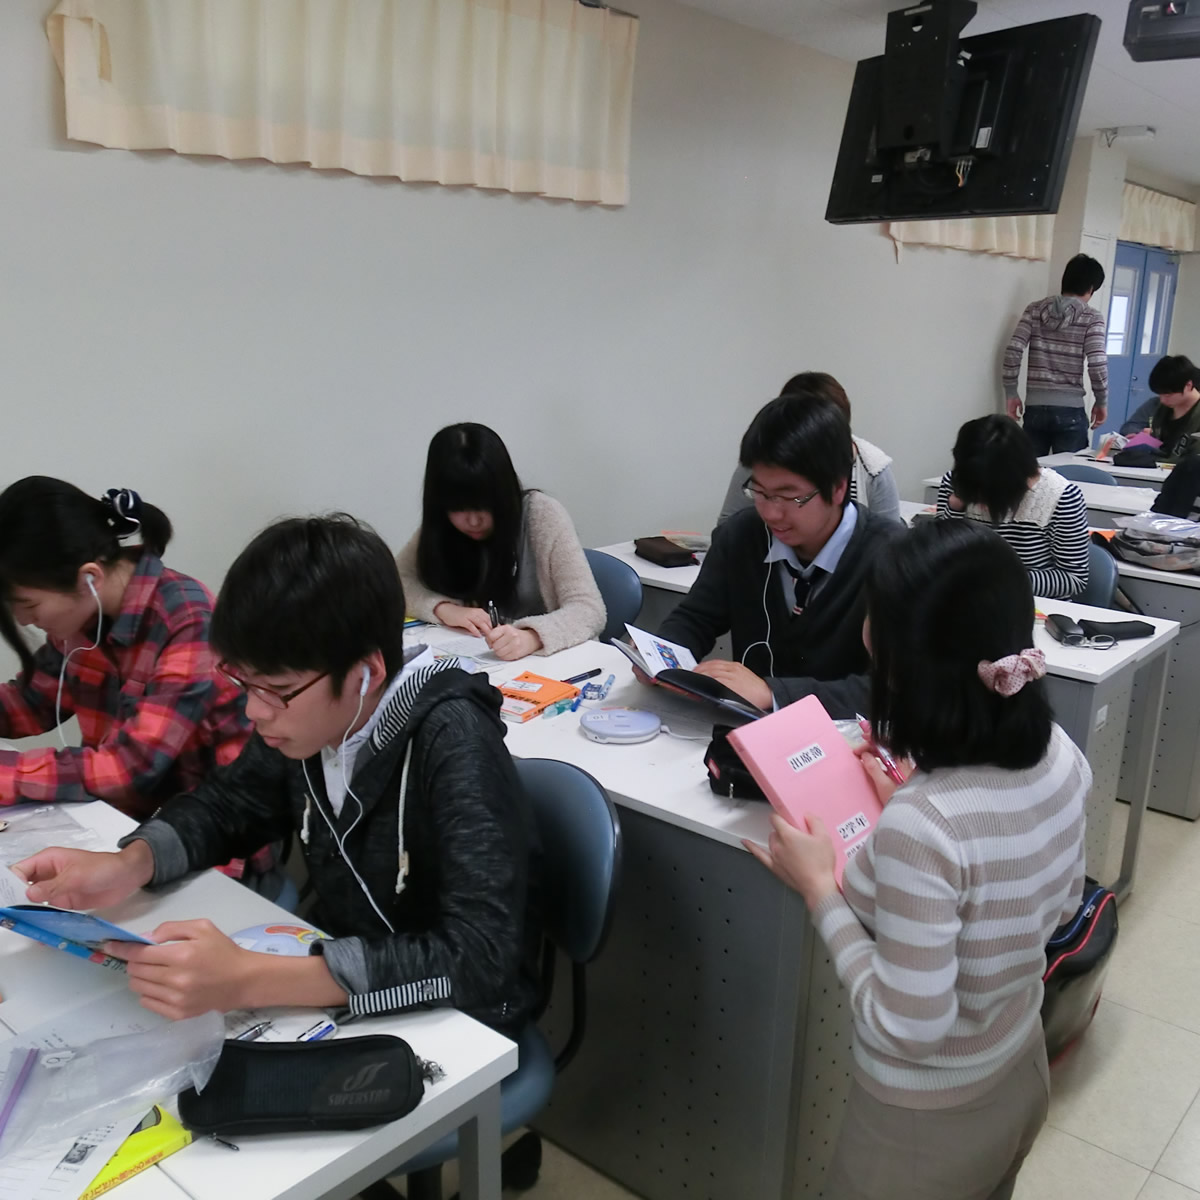 General Education | National Institute of Technology, Toyota